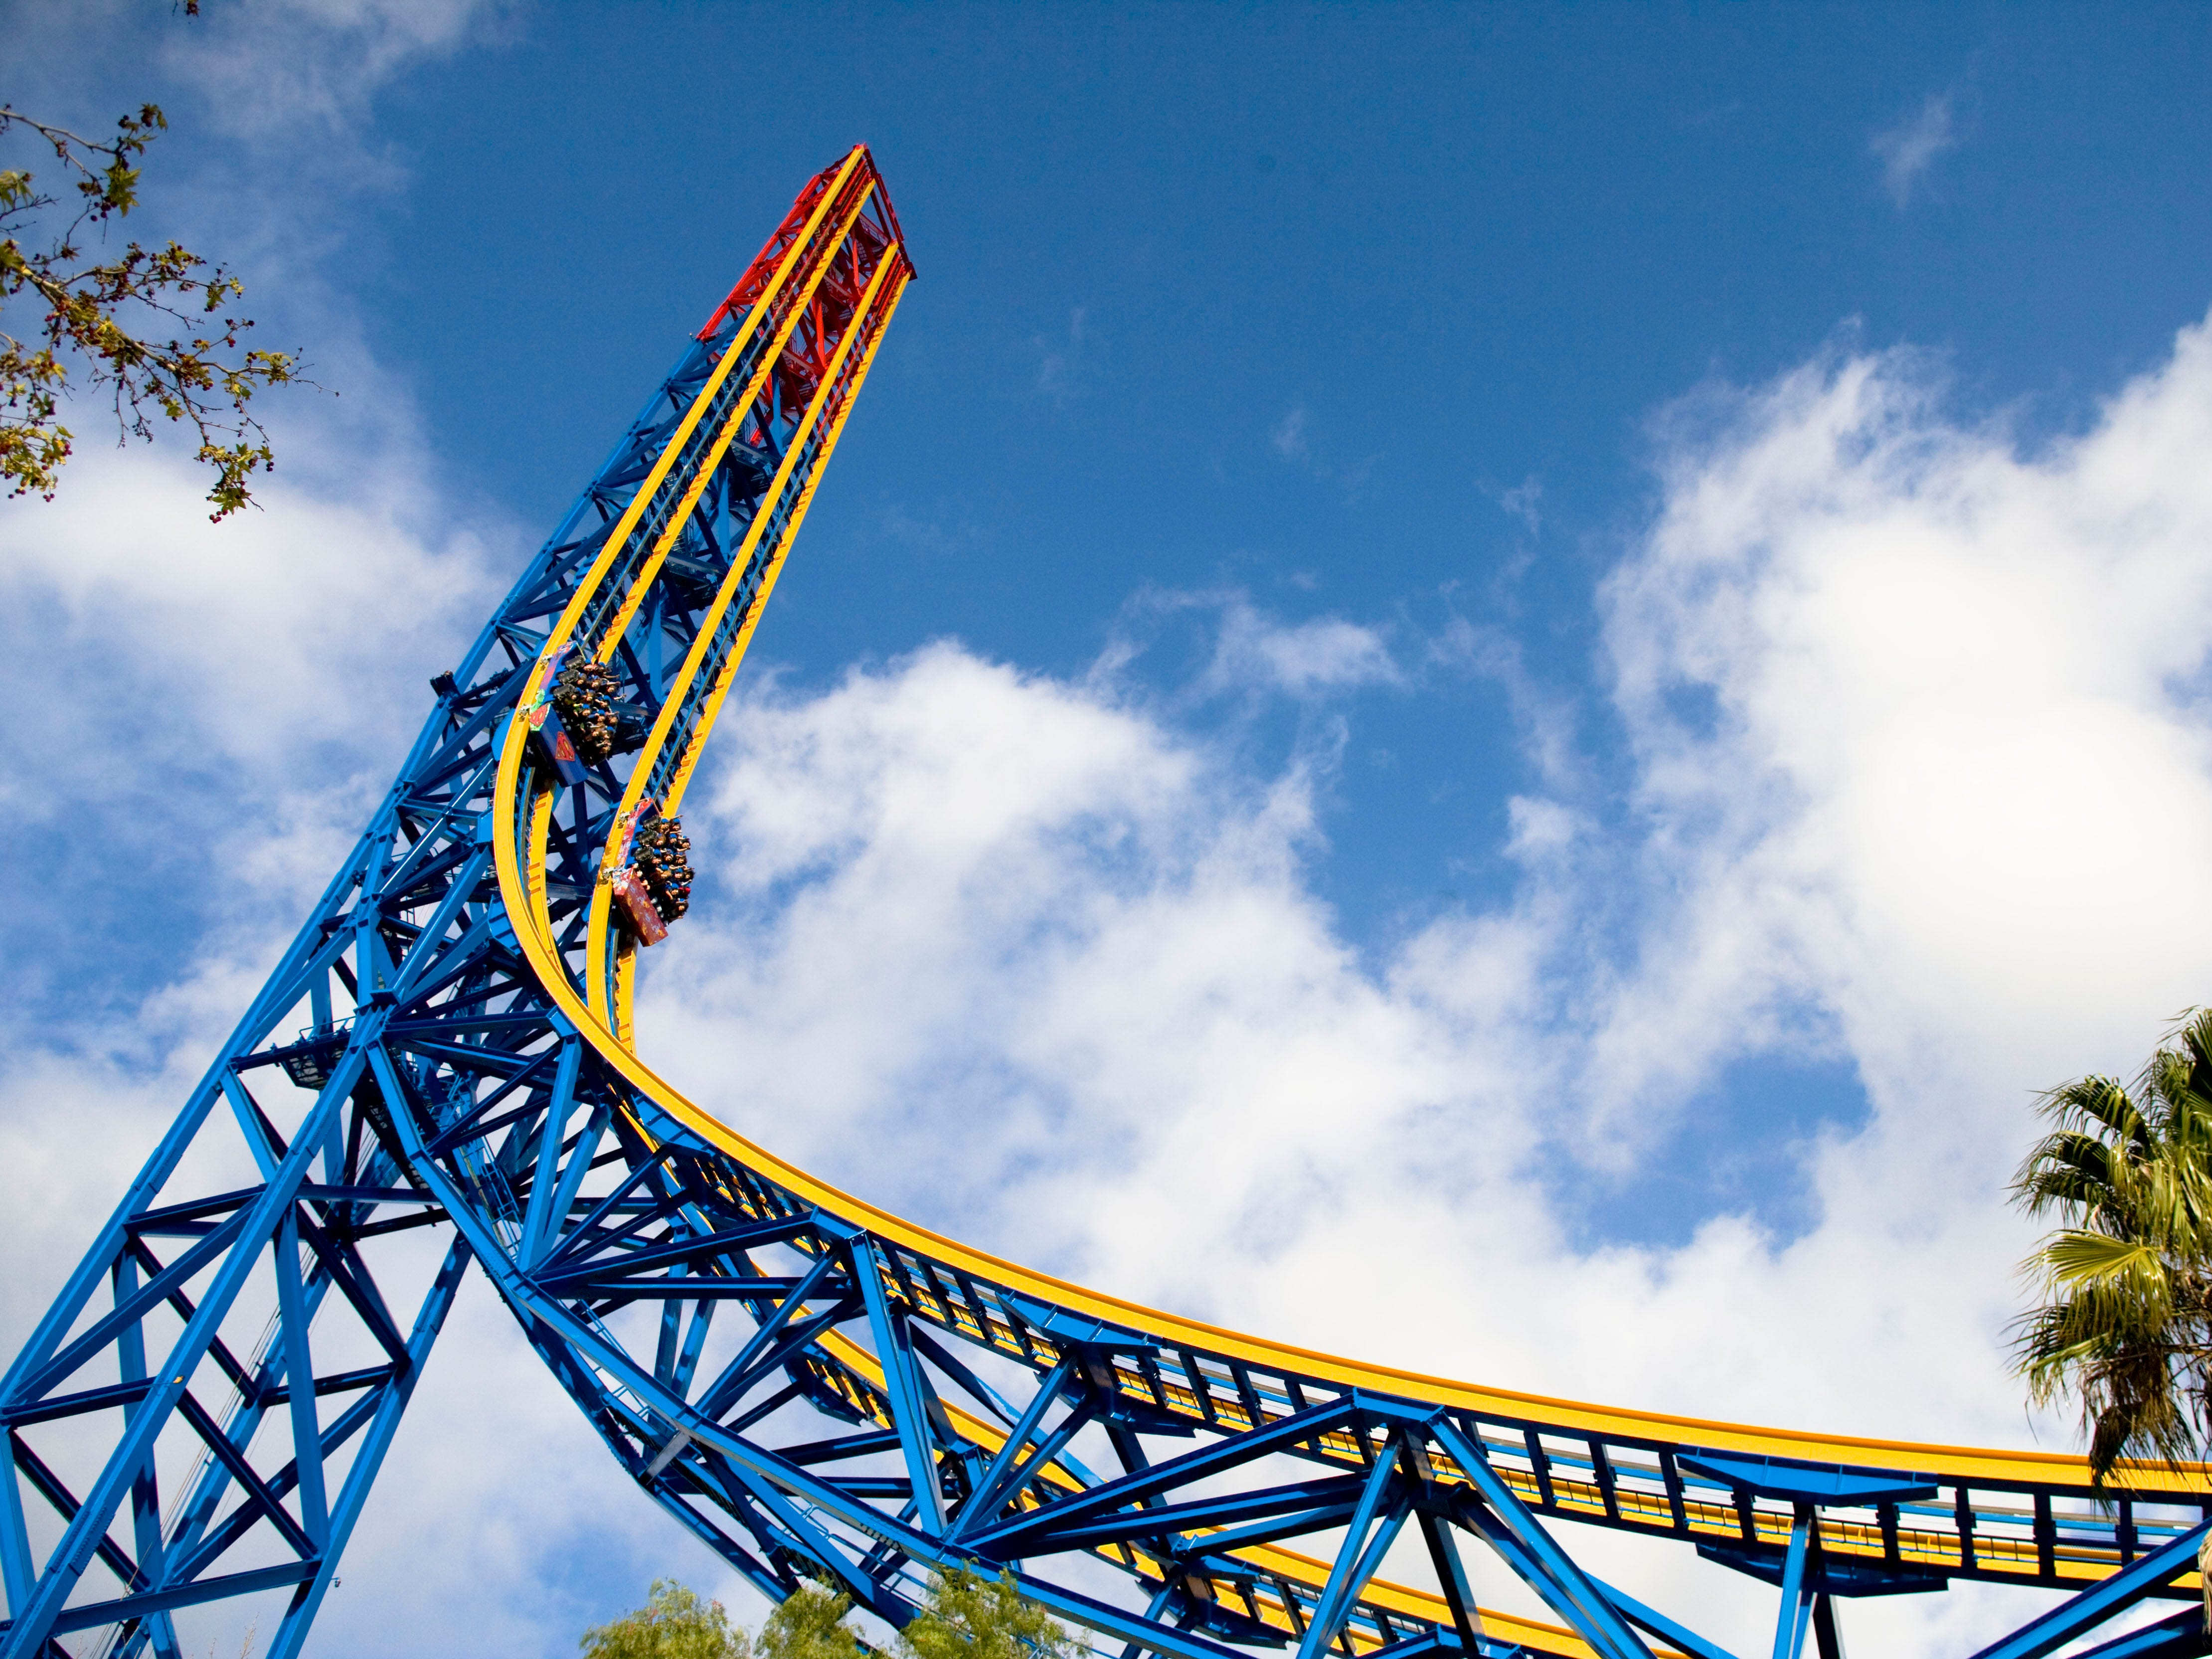 Superman: Escape from Krypton at Six Flags Magic Mountain in Valencia, California.